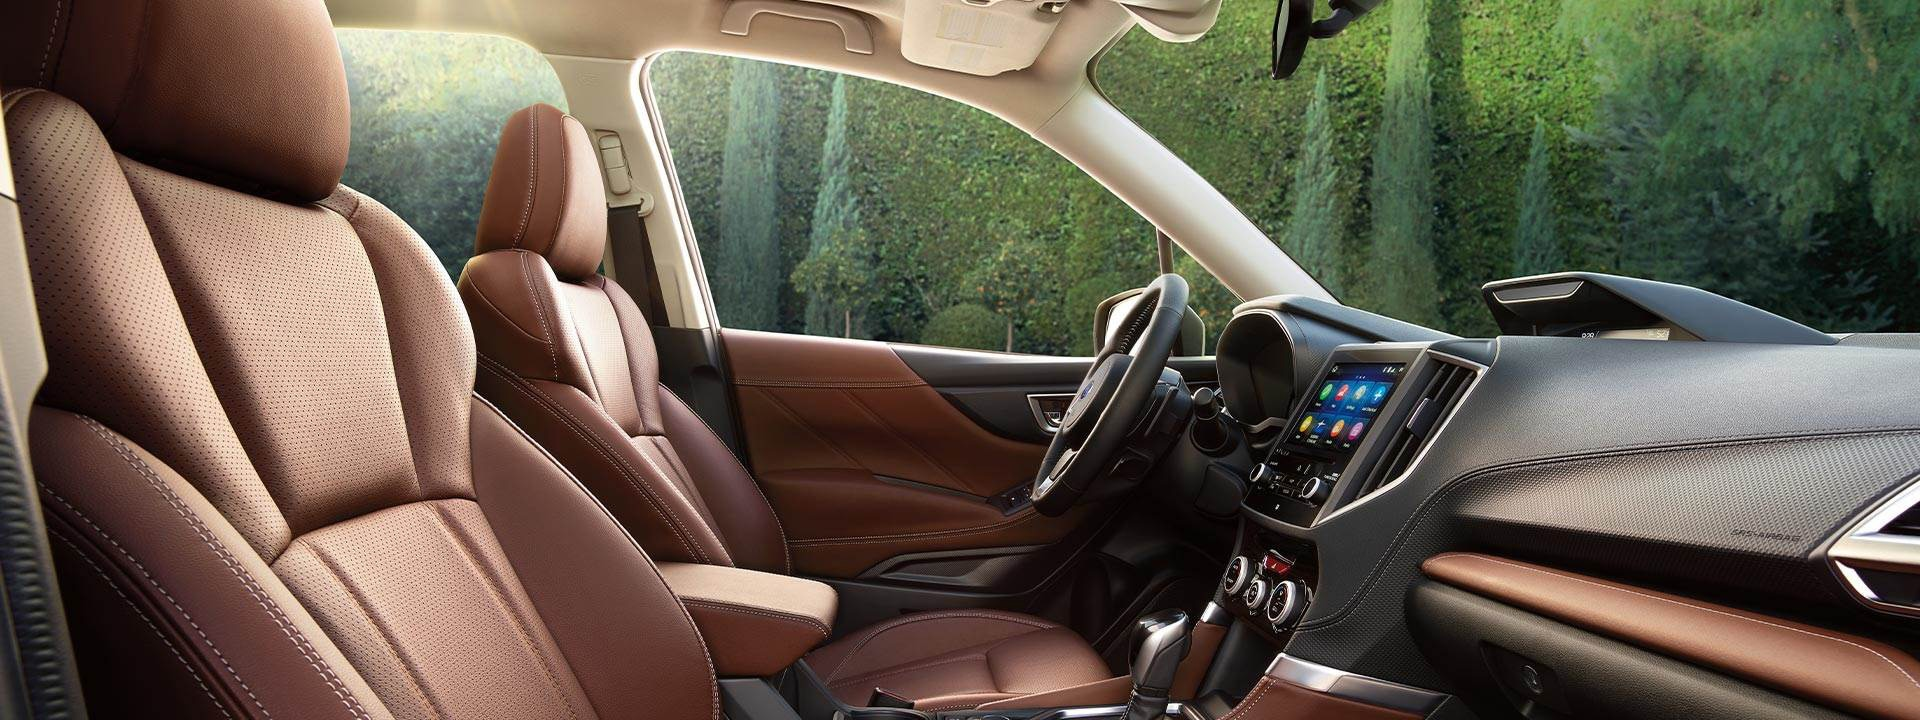 2021 Subaru Forester Interior Picture